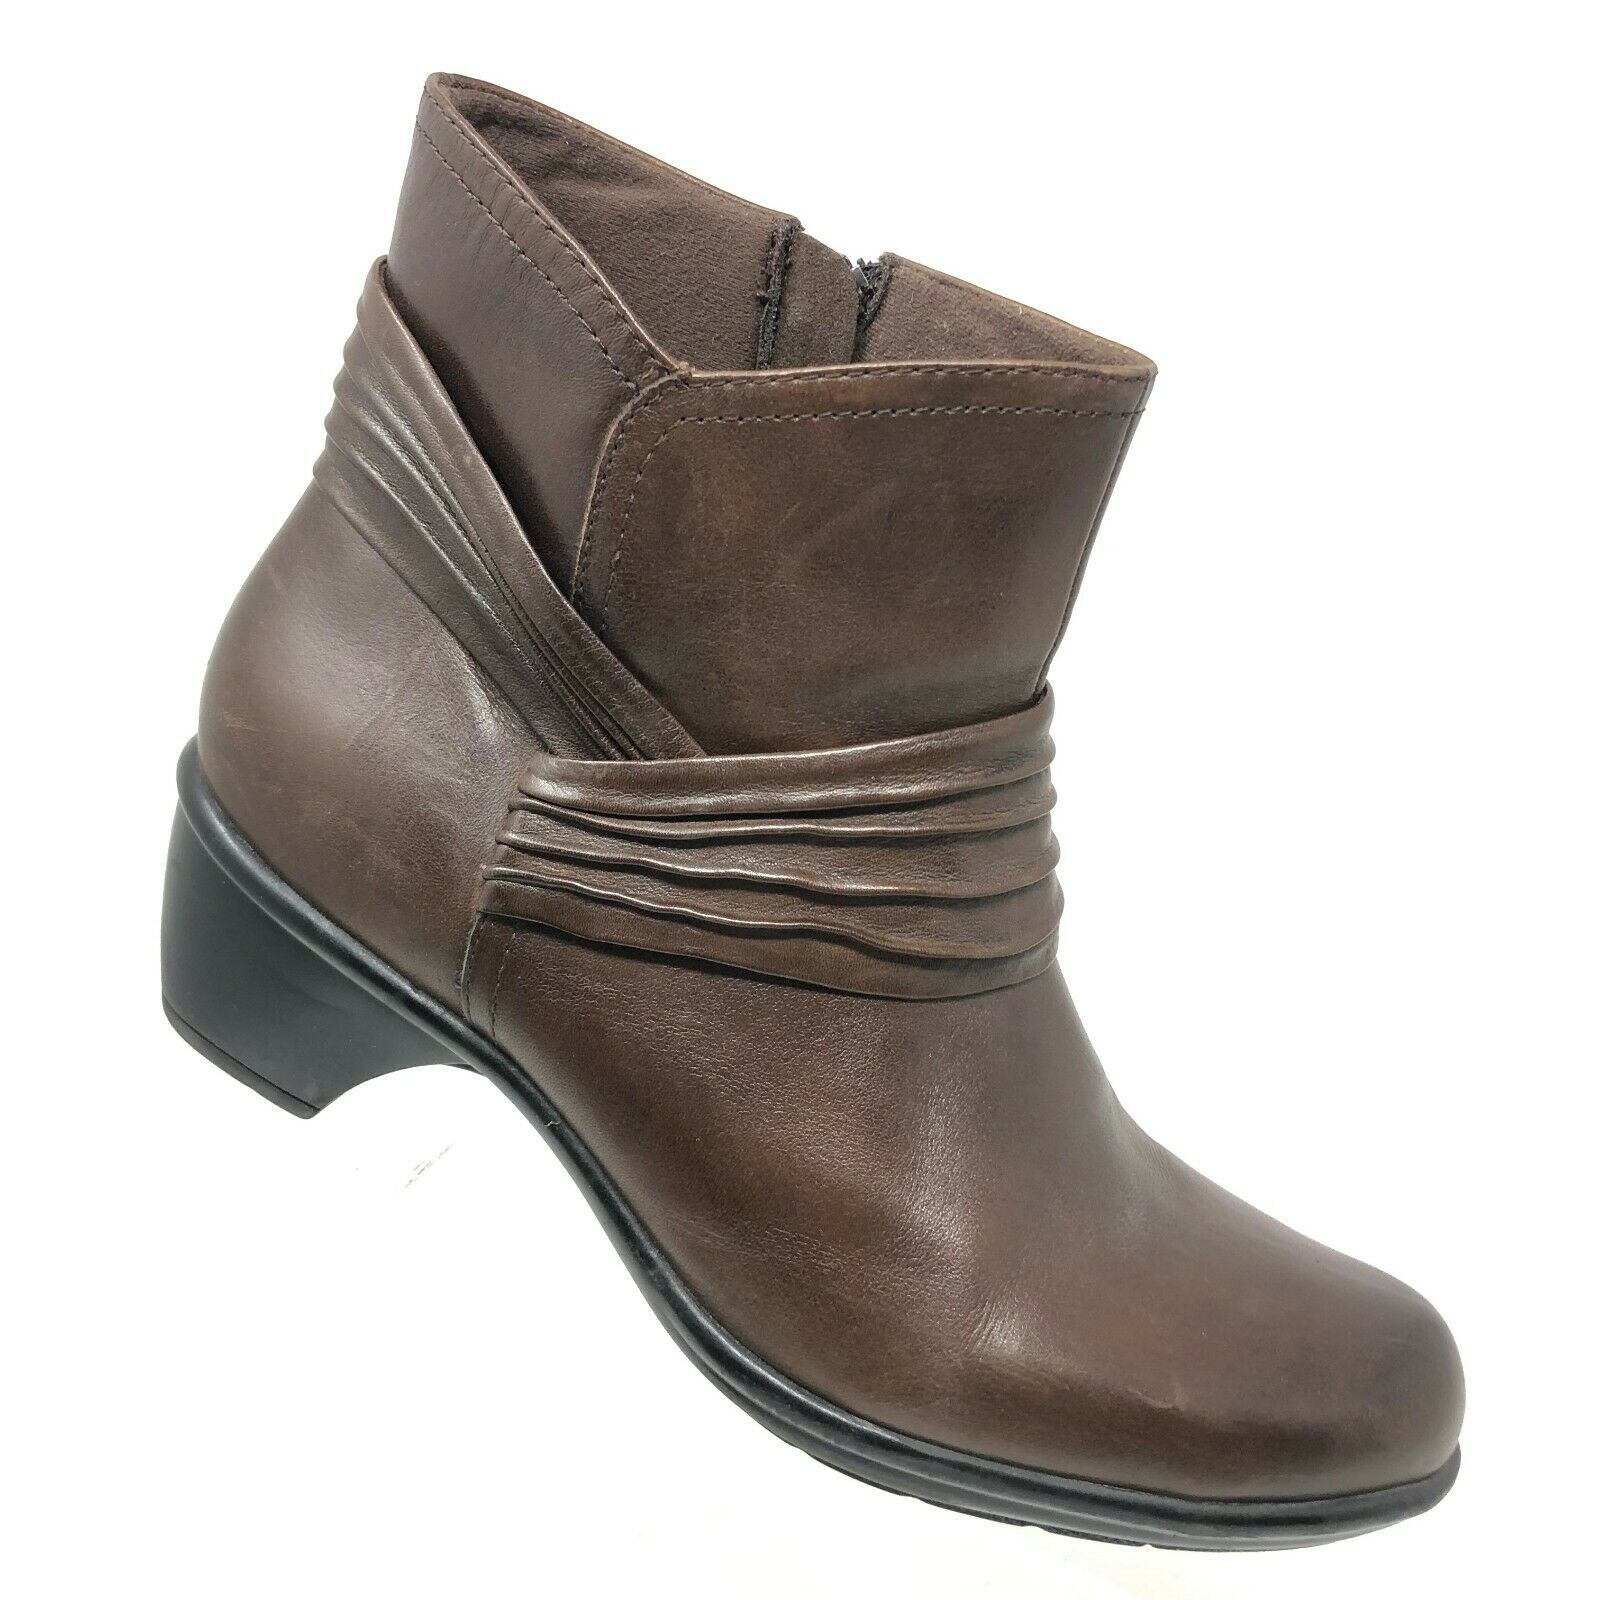 Clarks Bendables Wish Mood Brown Leather Ankle Boot Pleated Zip Womens SIZE 9 M